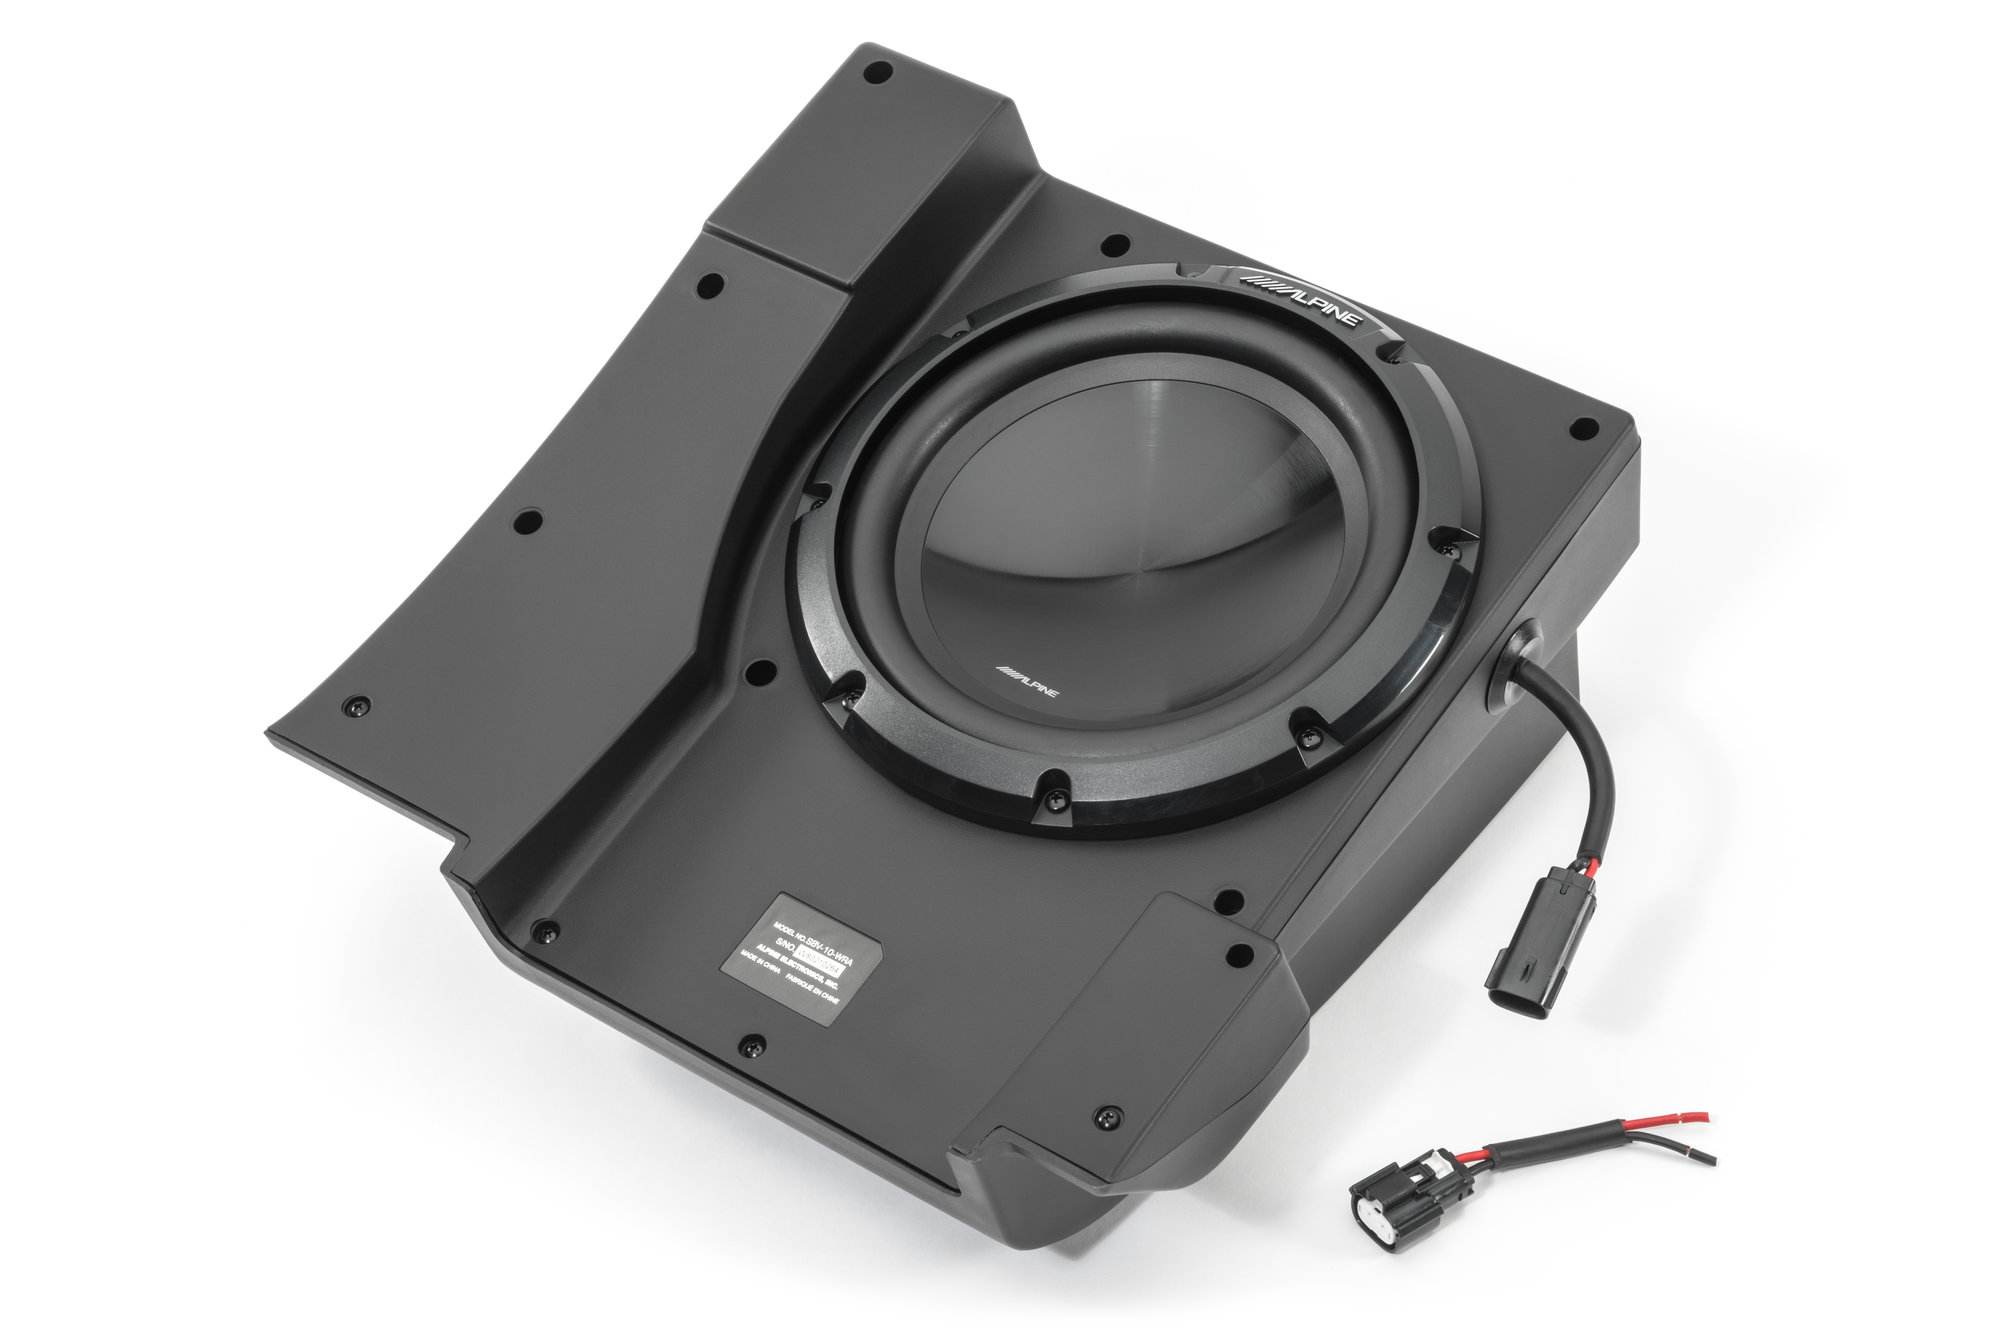 Wrangler Subwoofer Box Ivoiregion Jeep Jk 2013